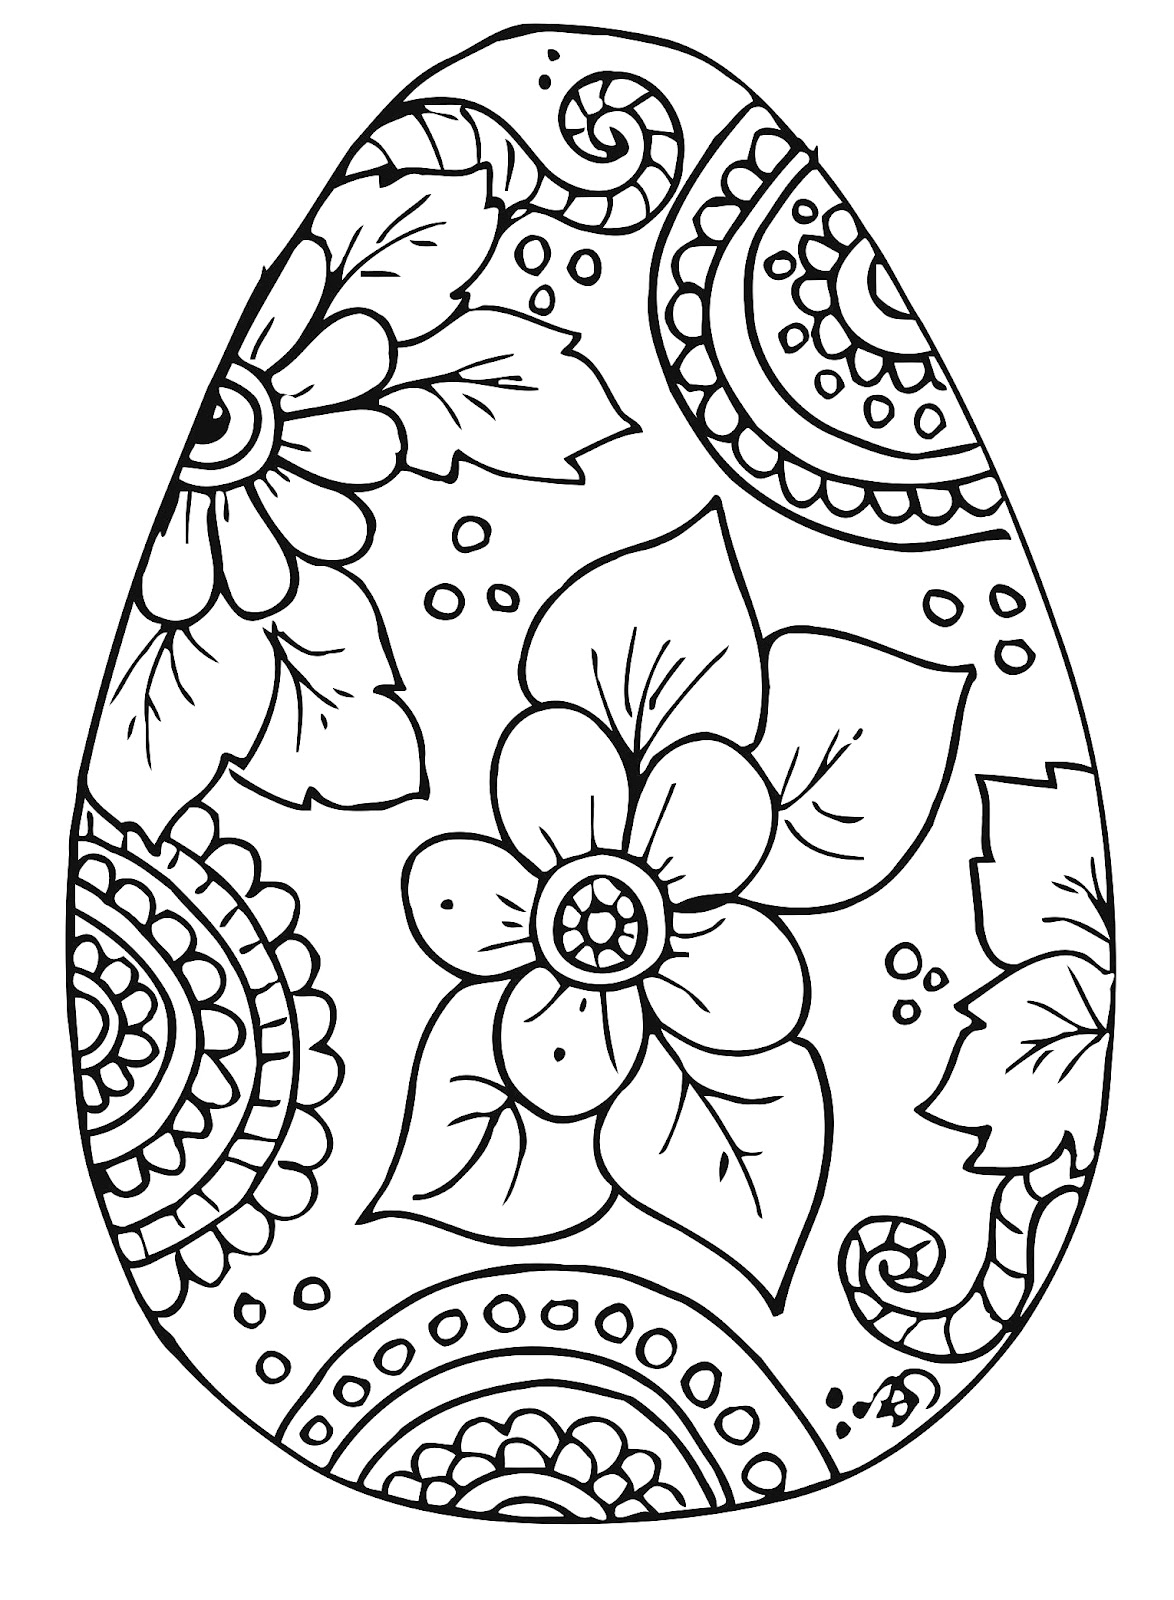 B d designs free coloring page easter kleurplaat pasen for Free easter coloring page